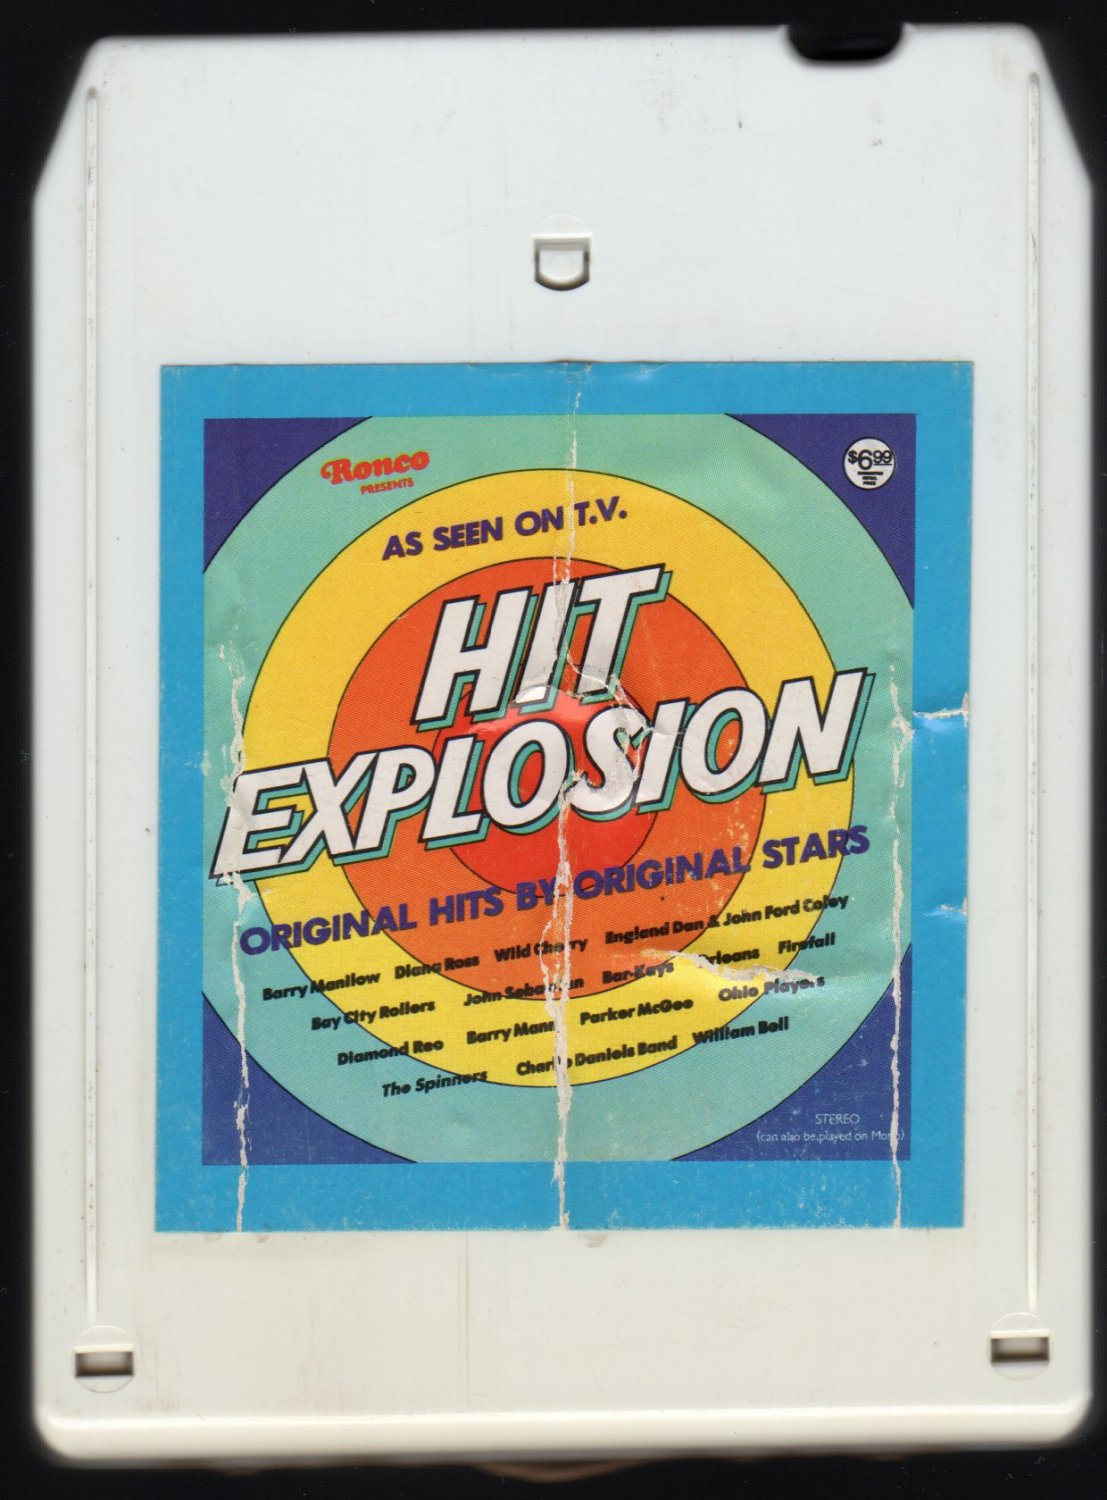 Hit Explosion - Original Hits By Original Stars 1977 RONCO A26 8-TRACK TAPE